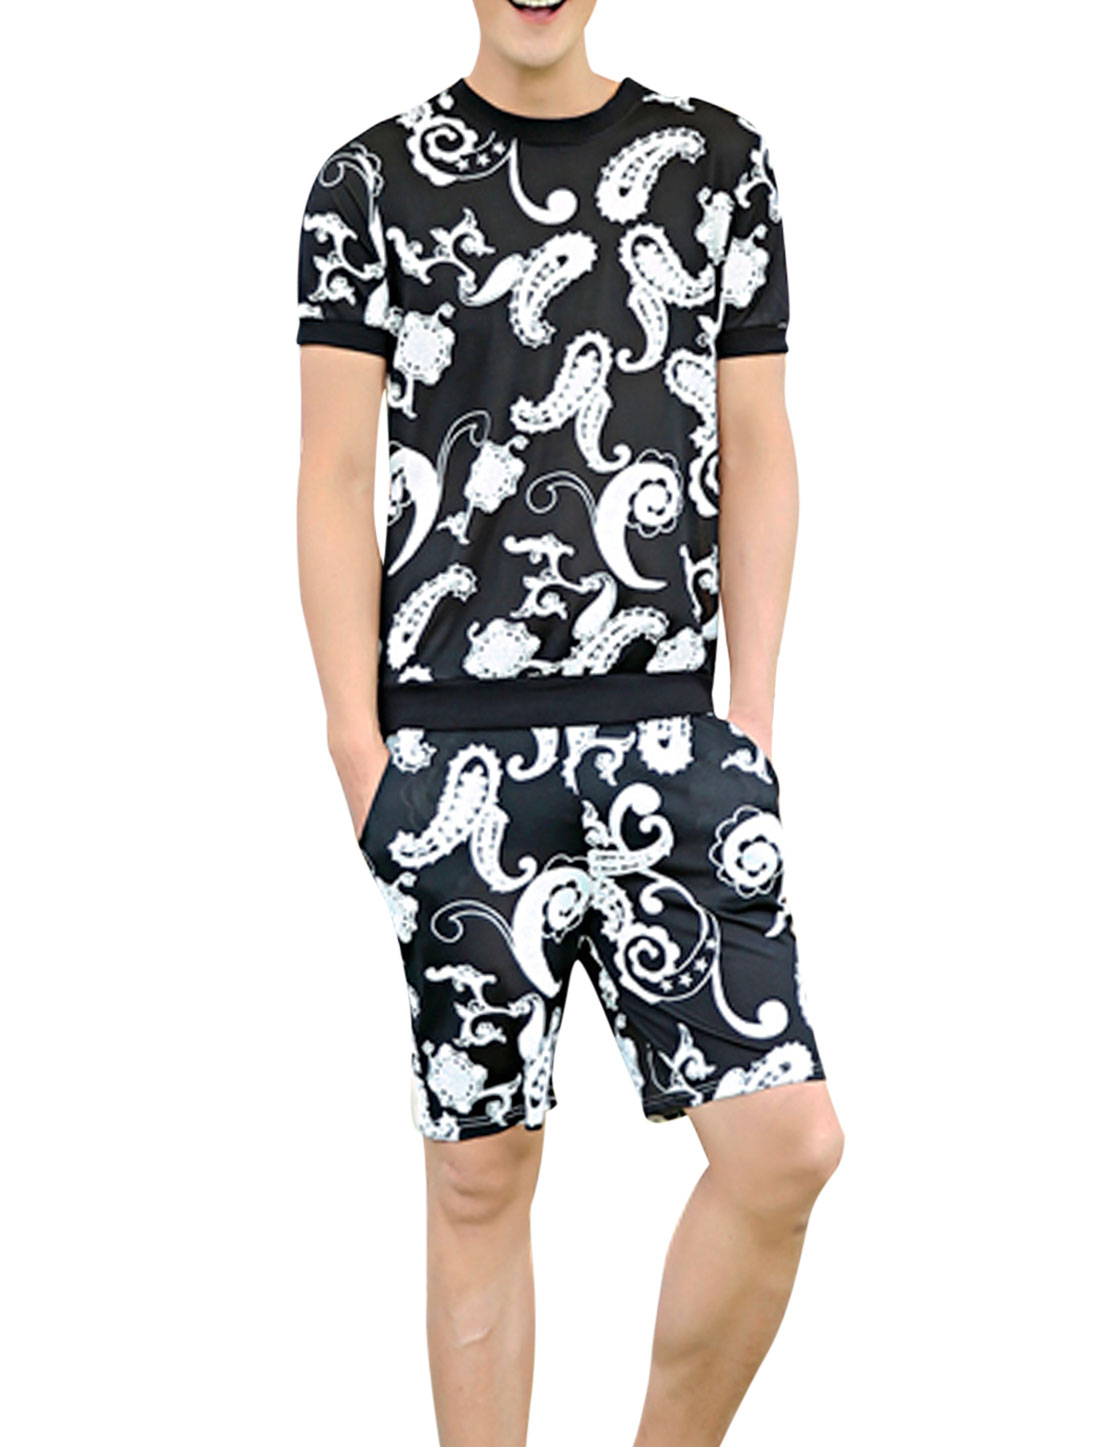 Men Paidsleys Prints Panel Design T-Shirt w Elastic Waist Shorts Black White S